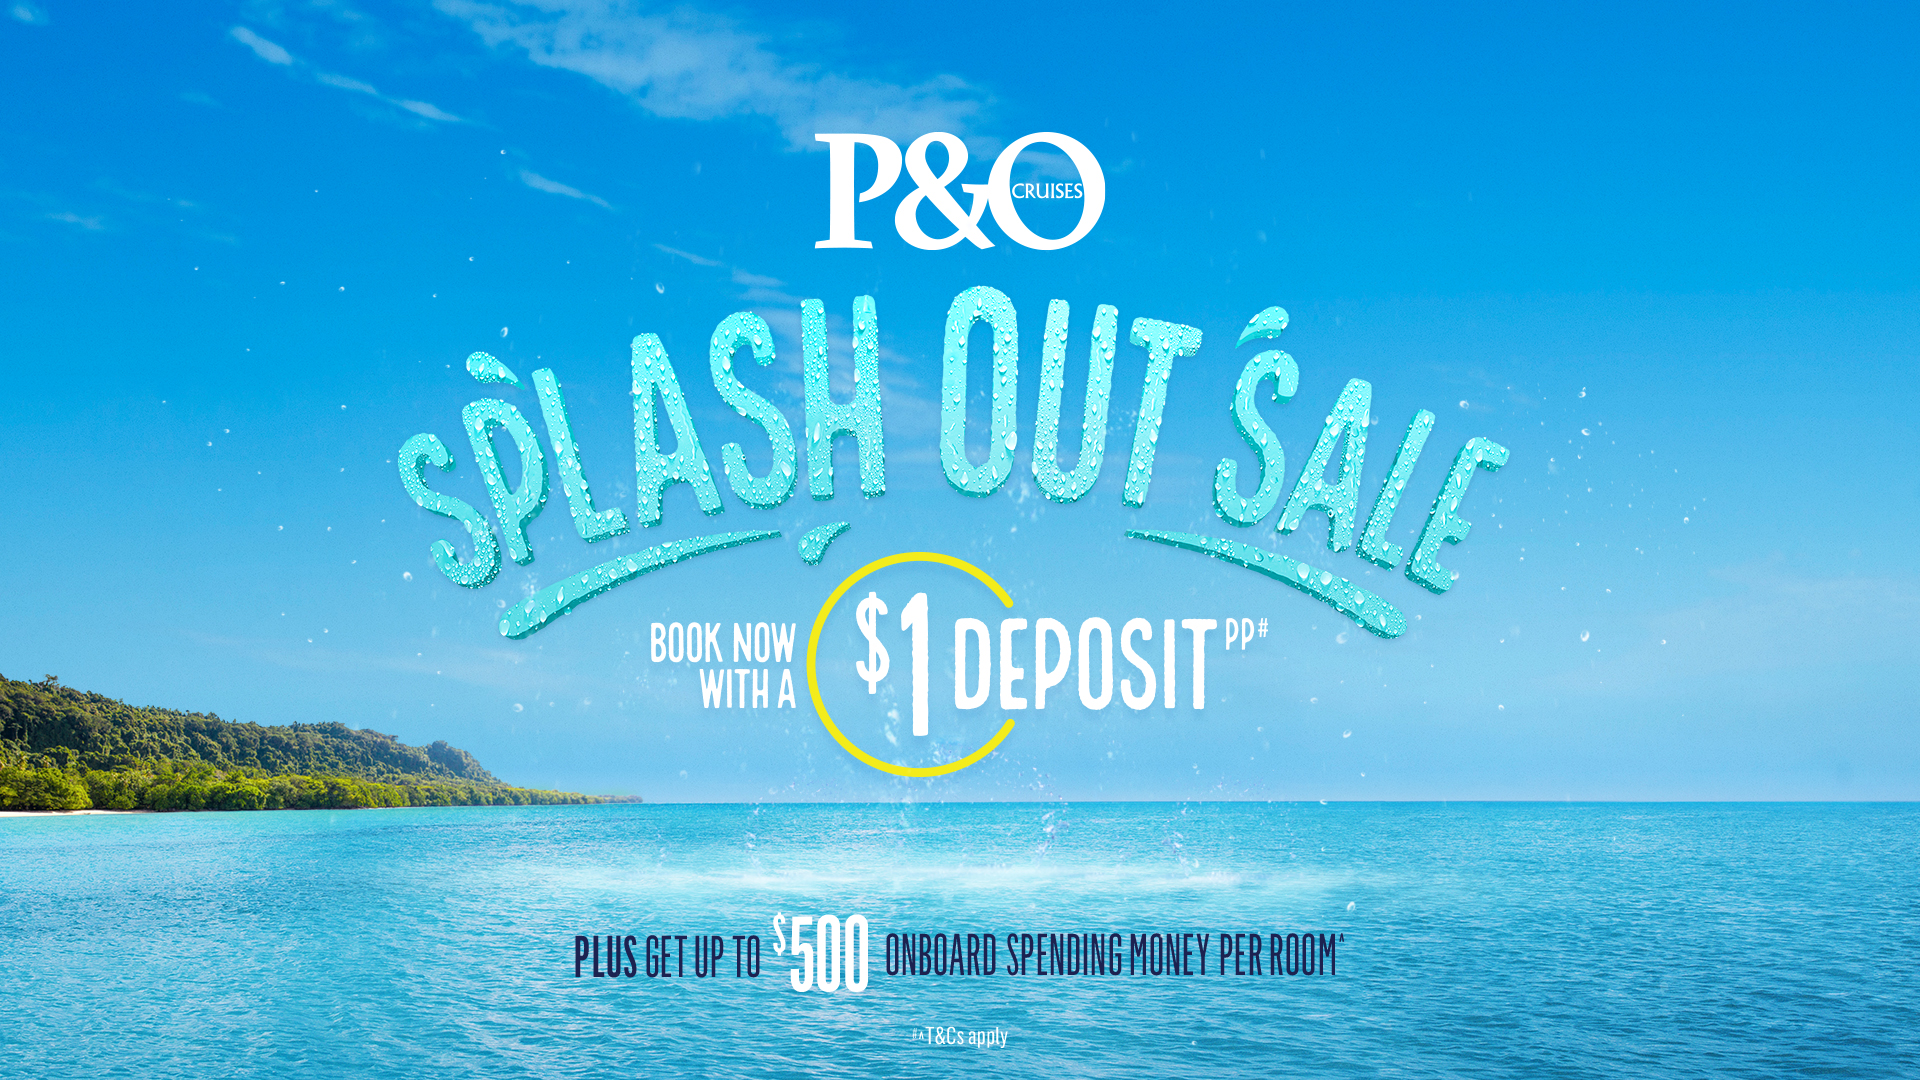 PO Cruises Splash out Cruise Sale